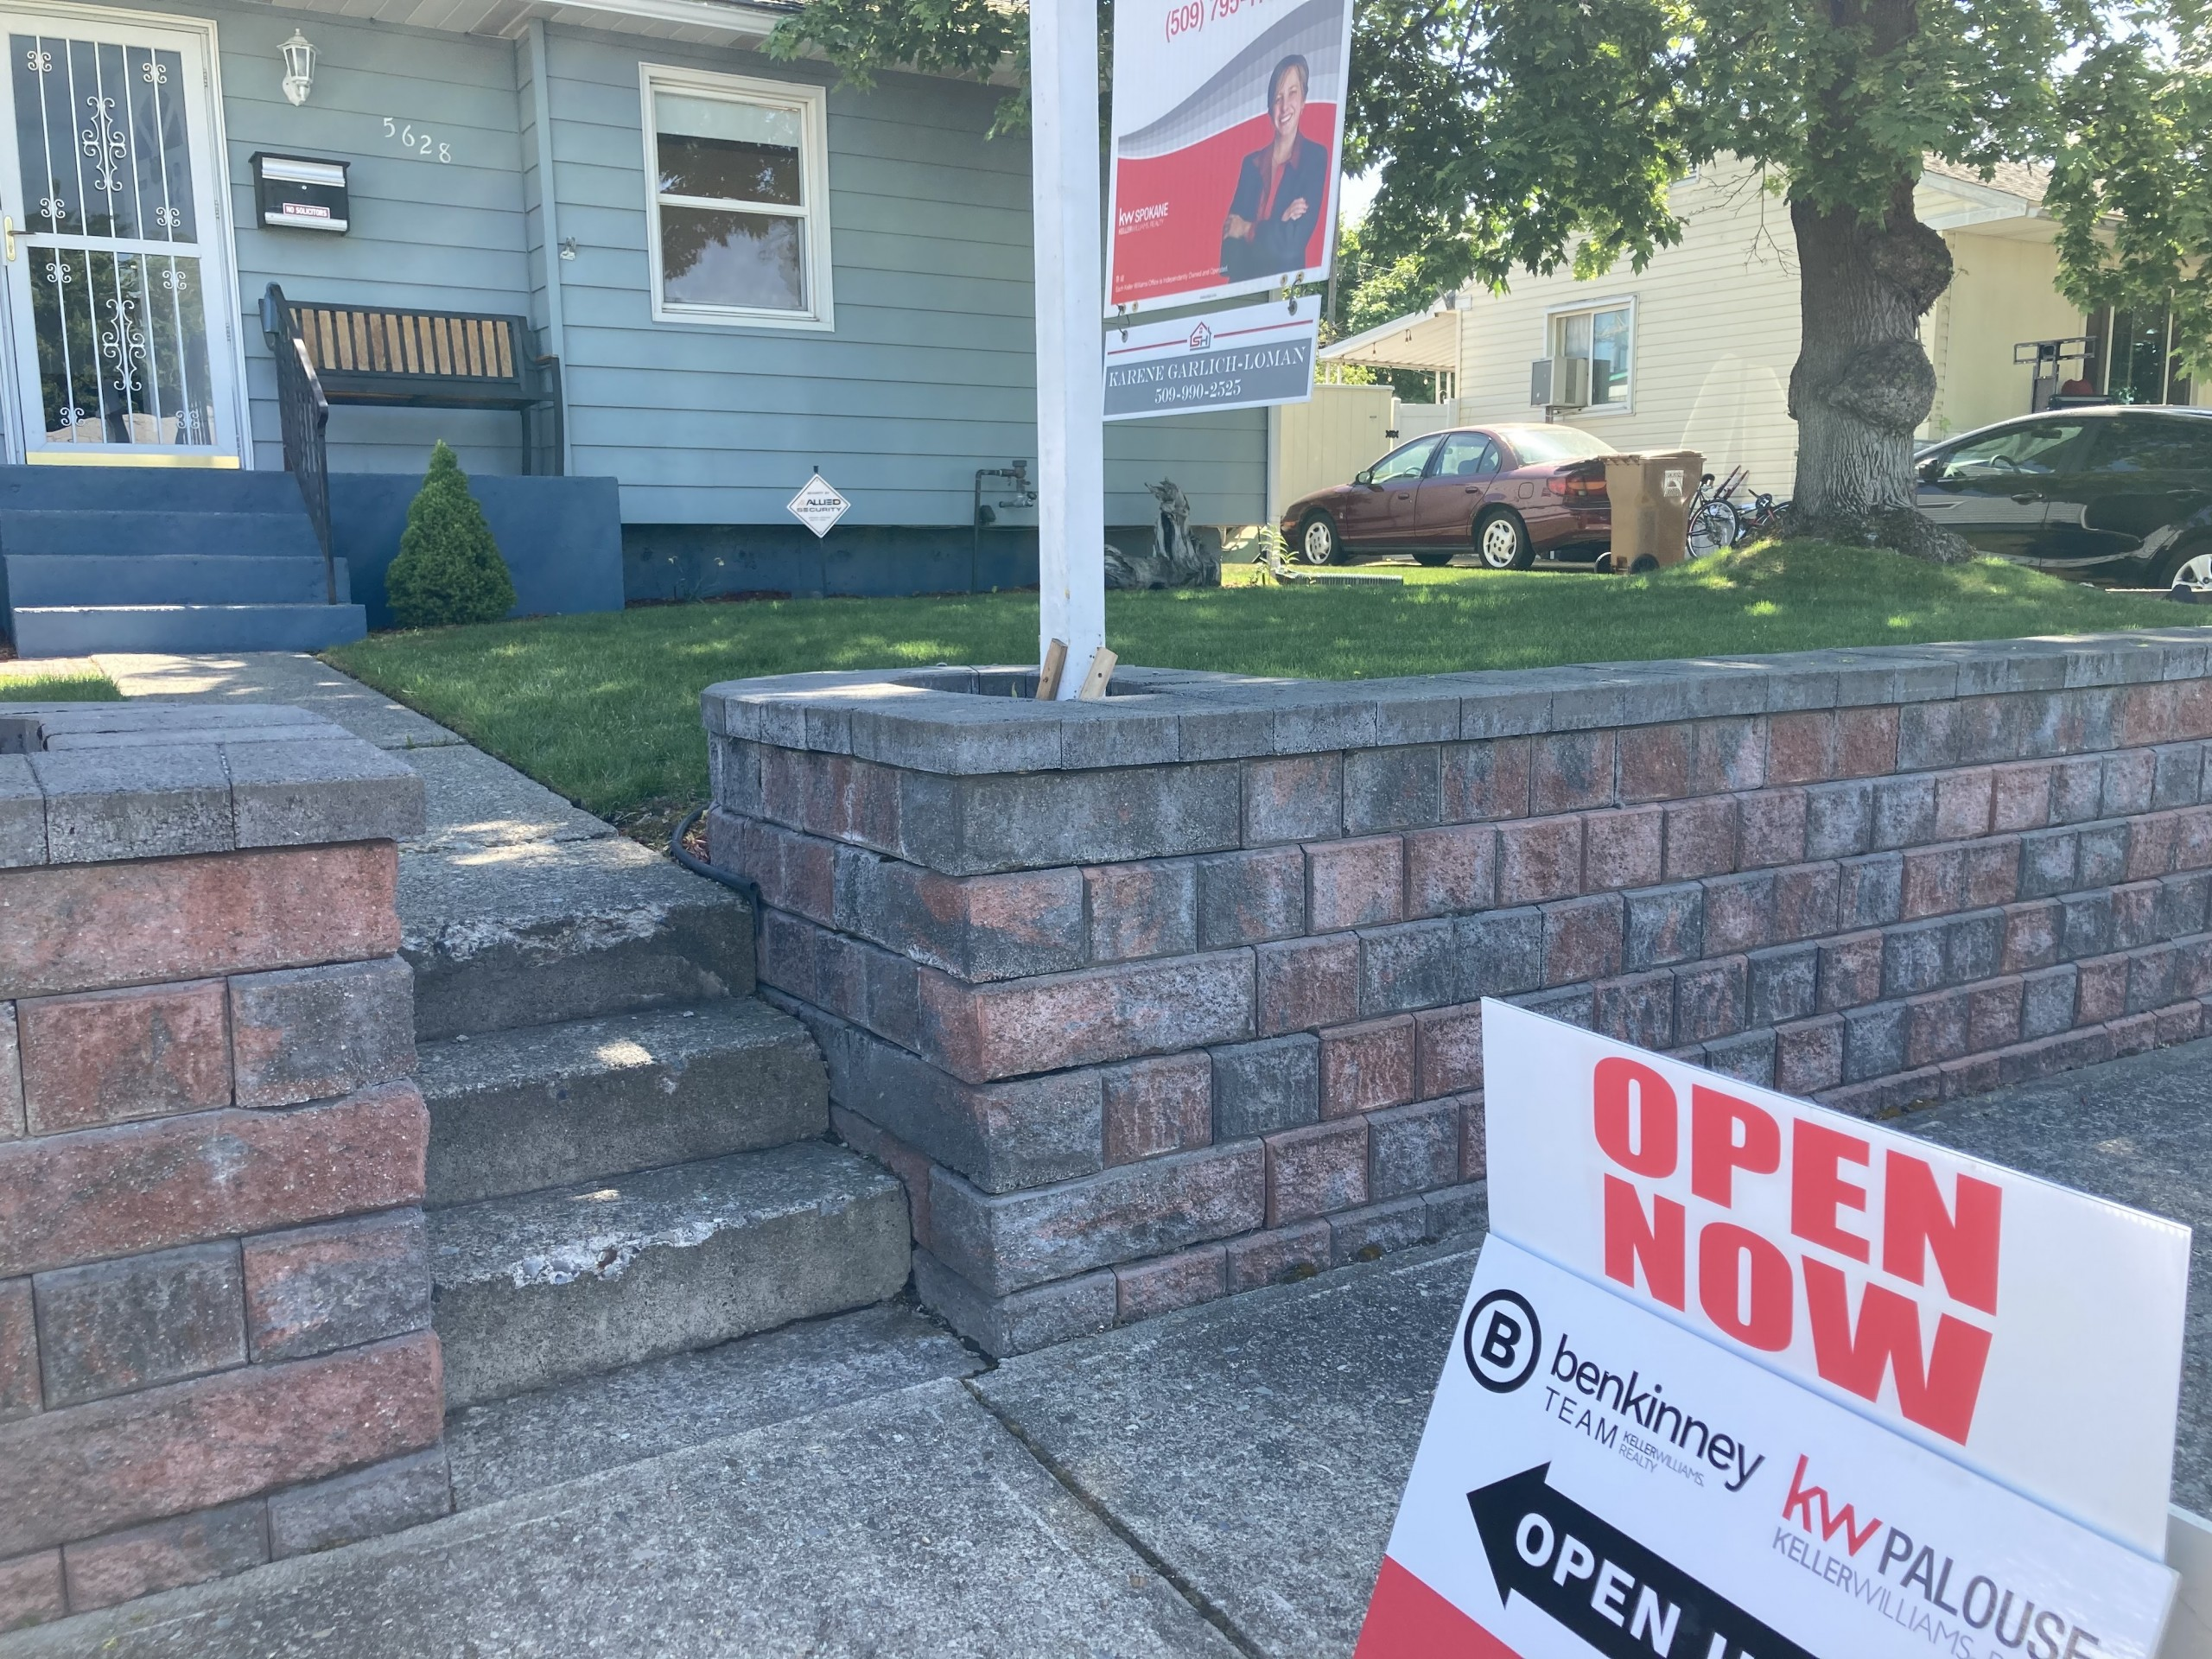 'We get frustrated a lot. We really want to move over here': Buyers flood Spokane open houses - KXLY